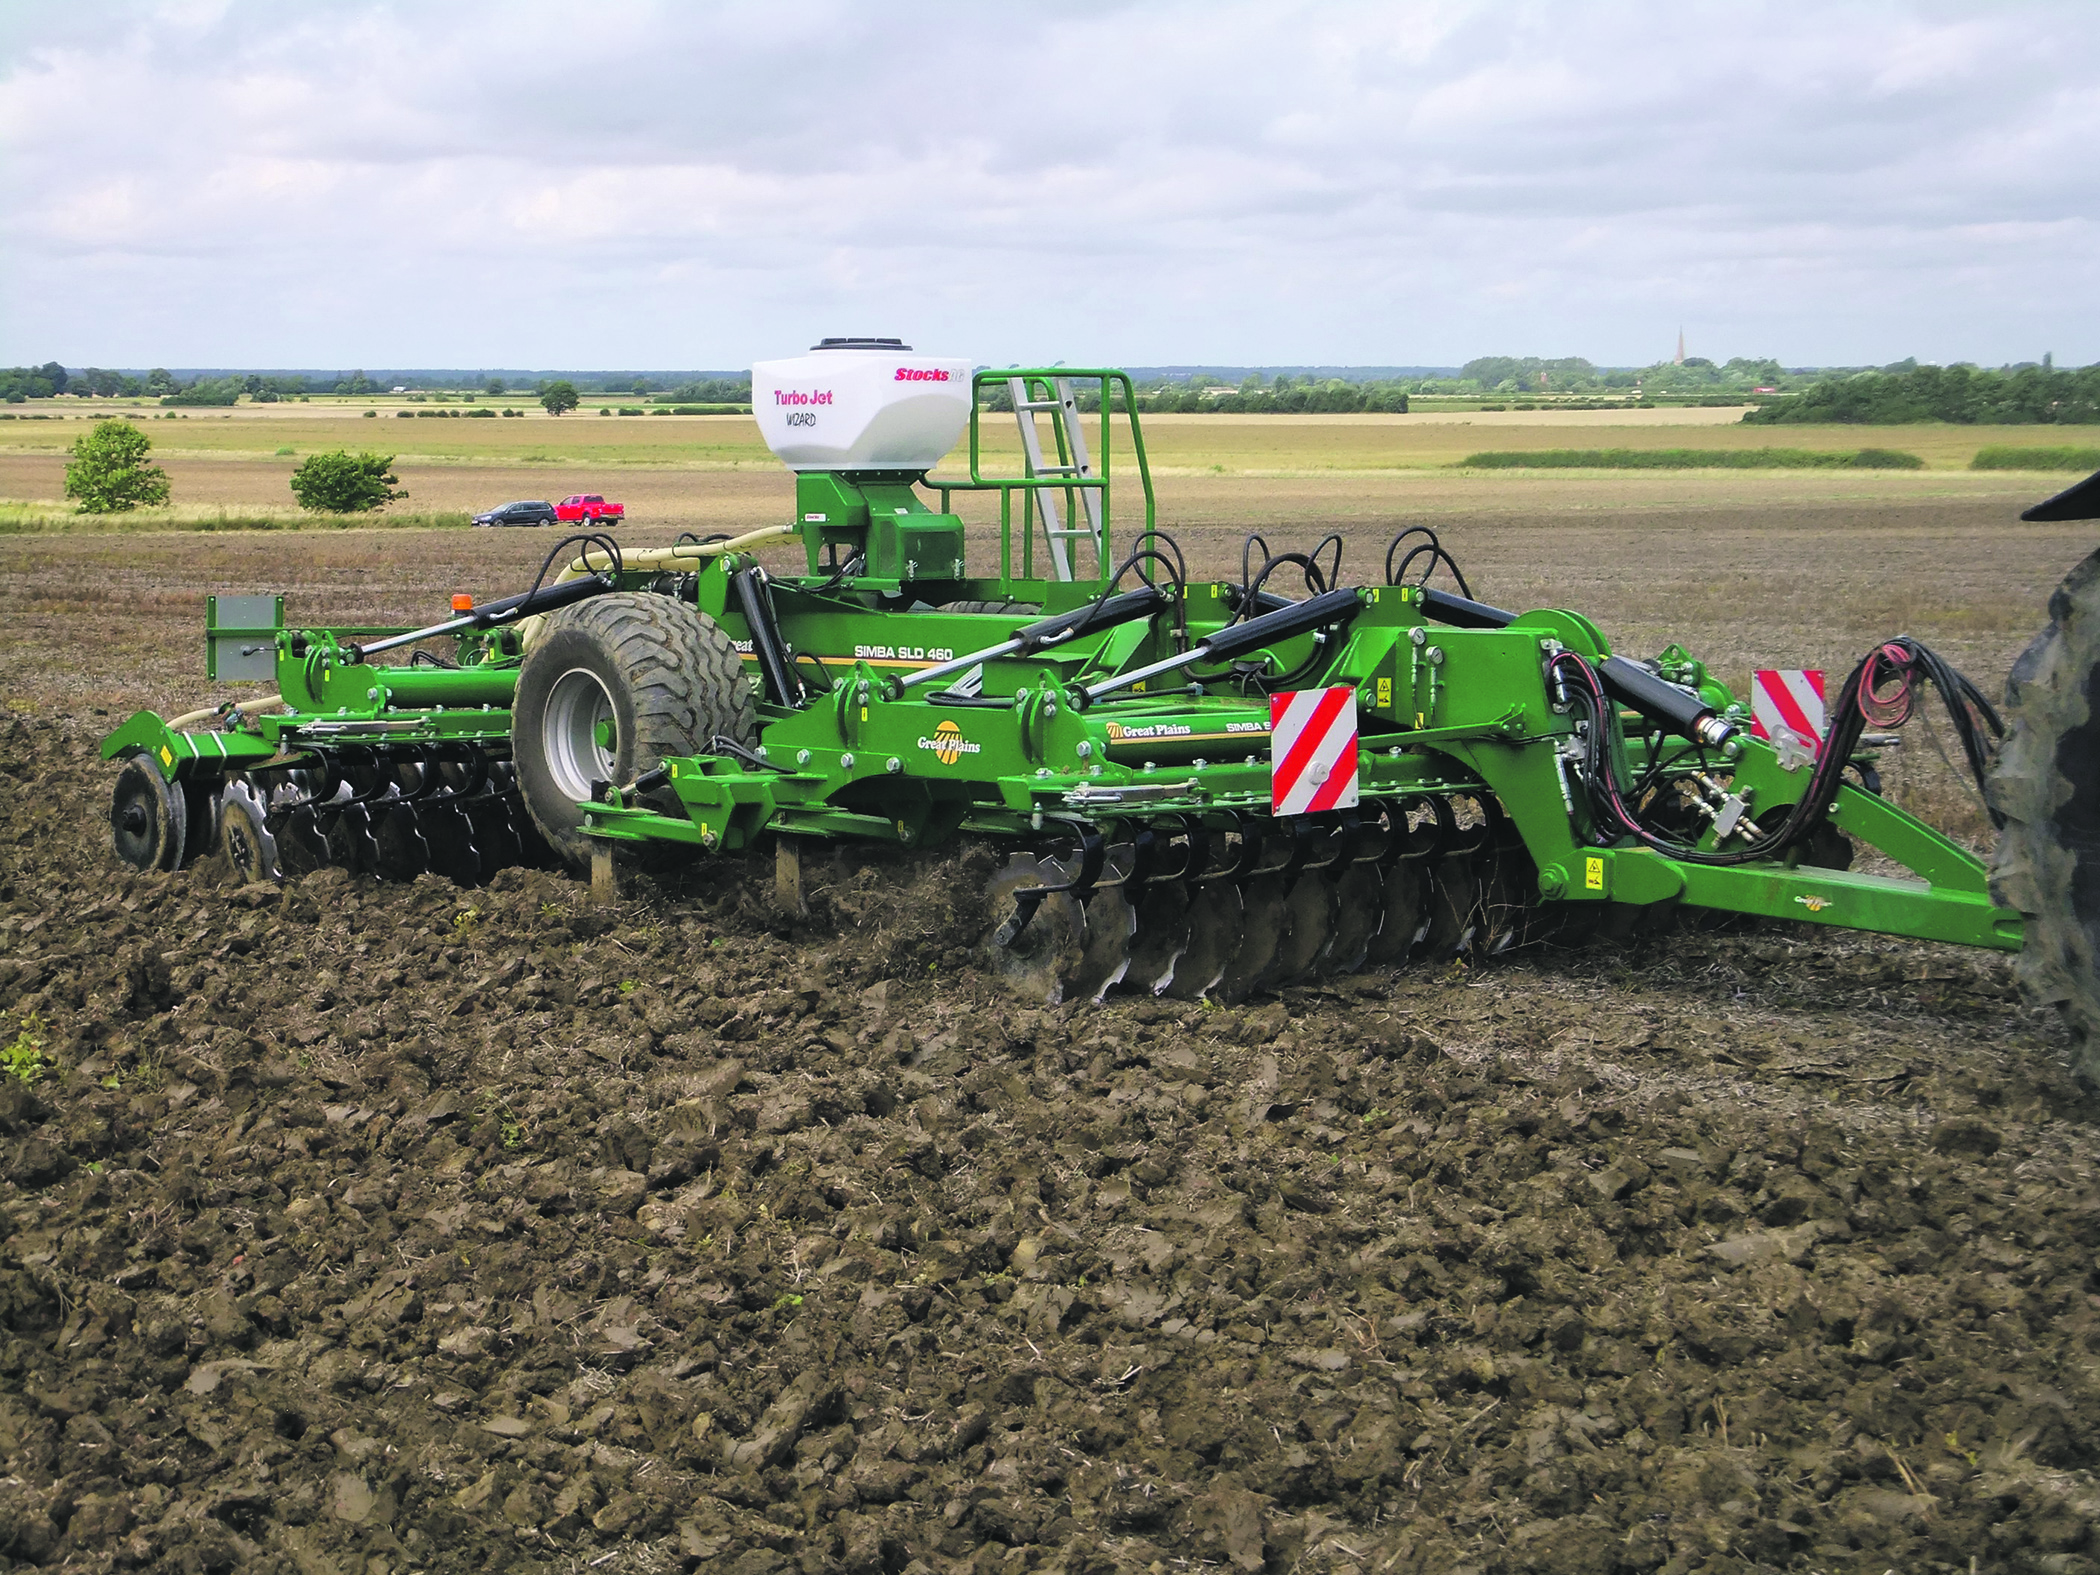 In-depth test looks at Great Plains' SLD cultivator capabilities